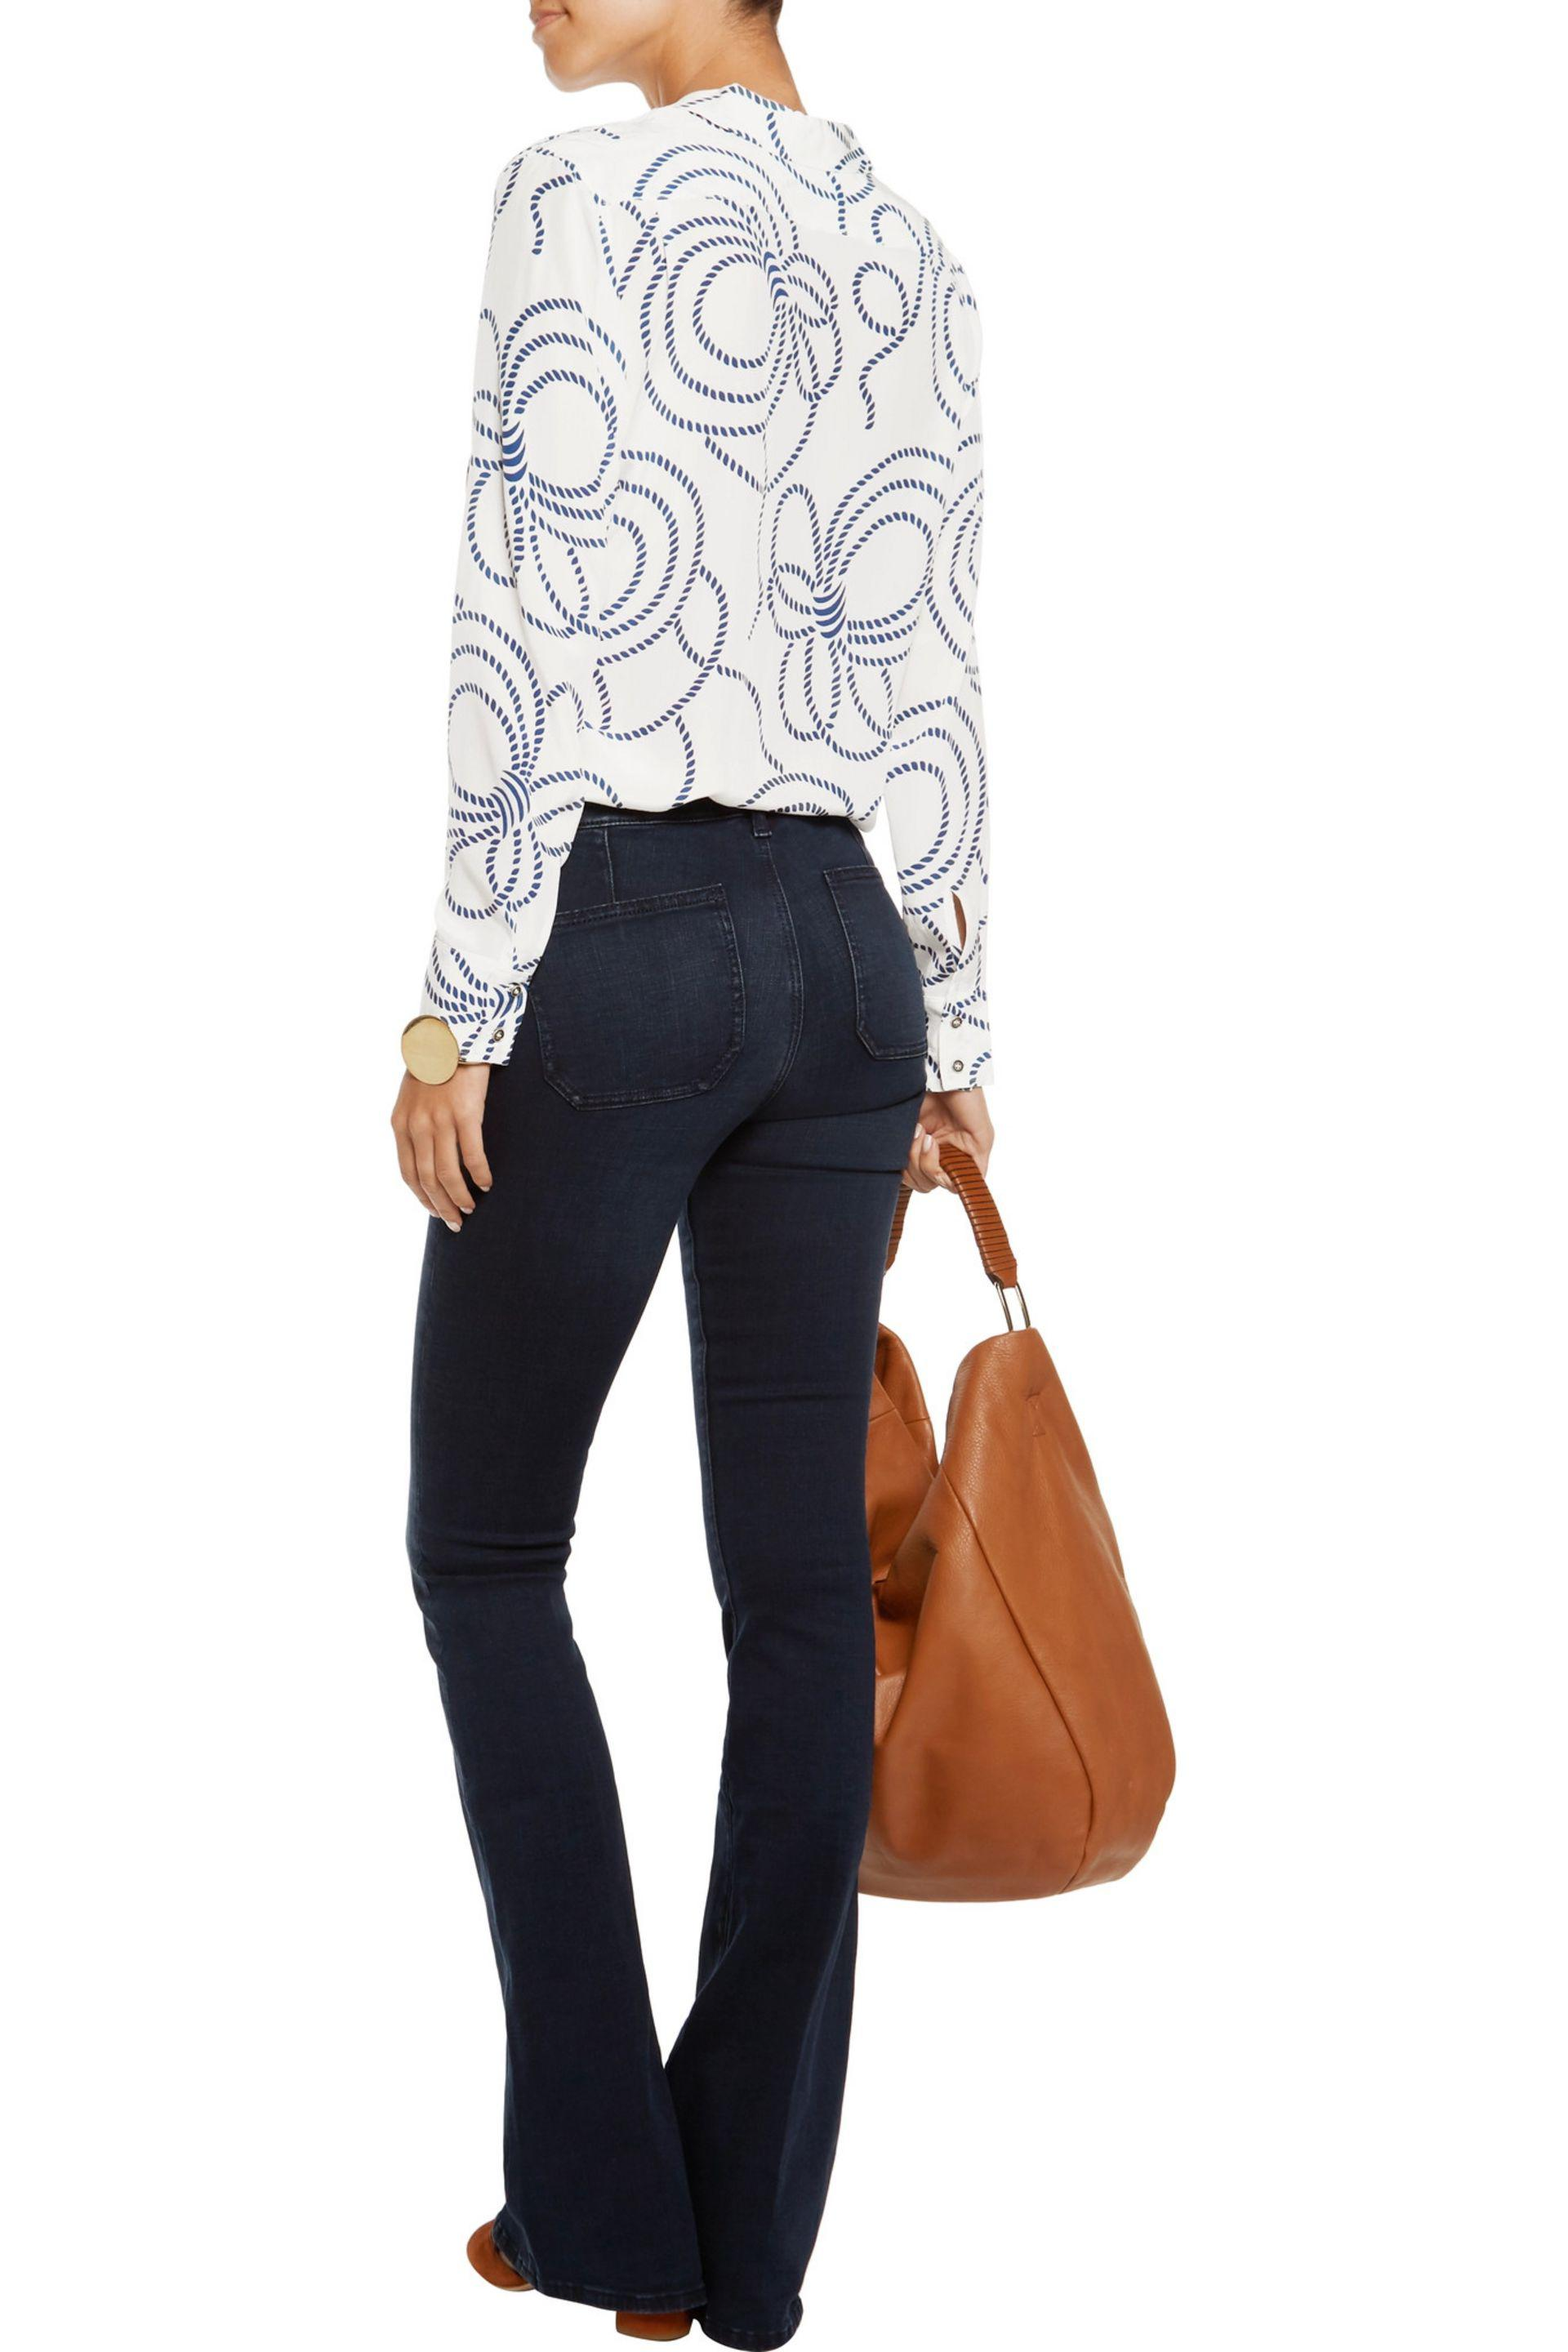 M.i.h Jeans Bodycon Marrakesh Mid-rise Flared Jeans Dark Denim Size 27 in Blue